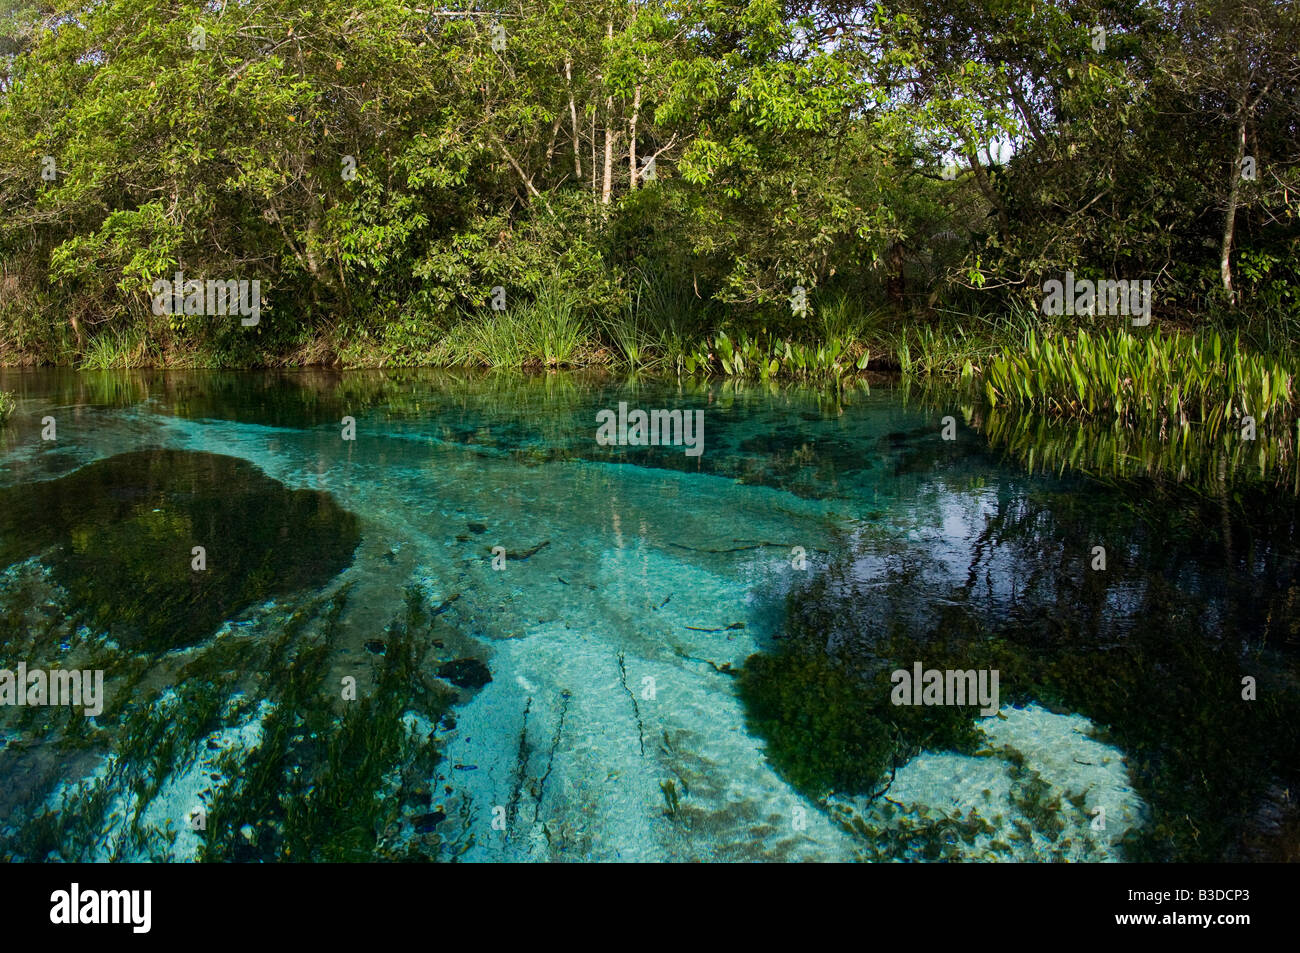 Crystal clear river in a region of Mato Grosso do Sul, Brazil - Stock Image